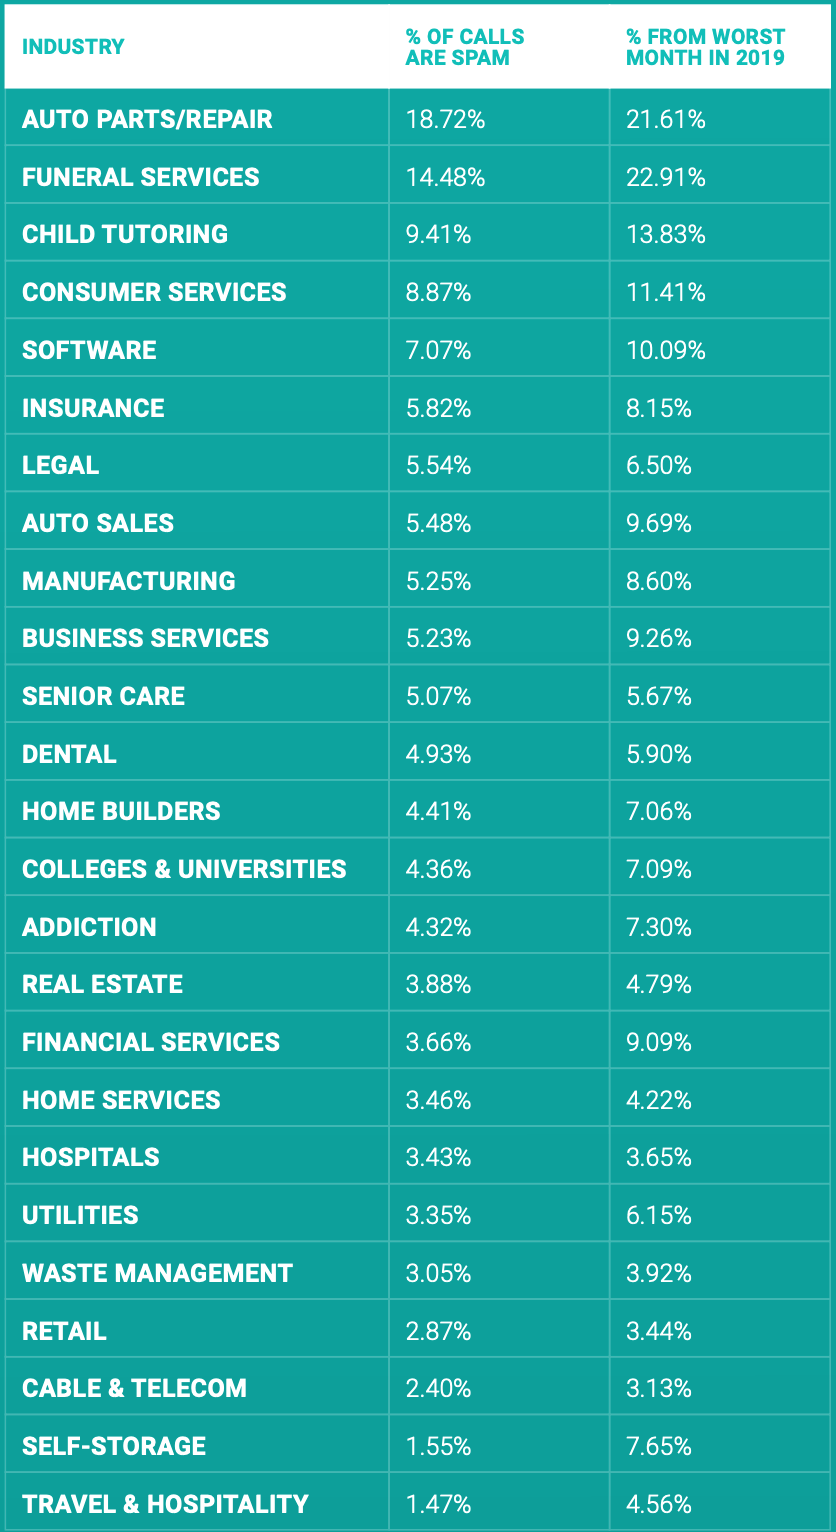 Percent of Calls that are Spam by industry